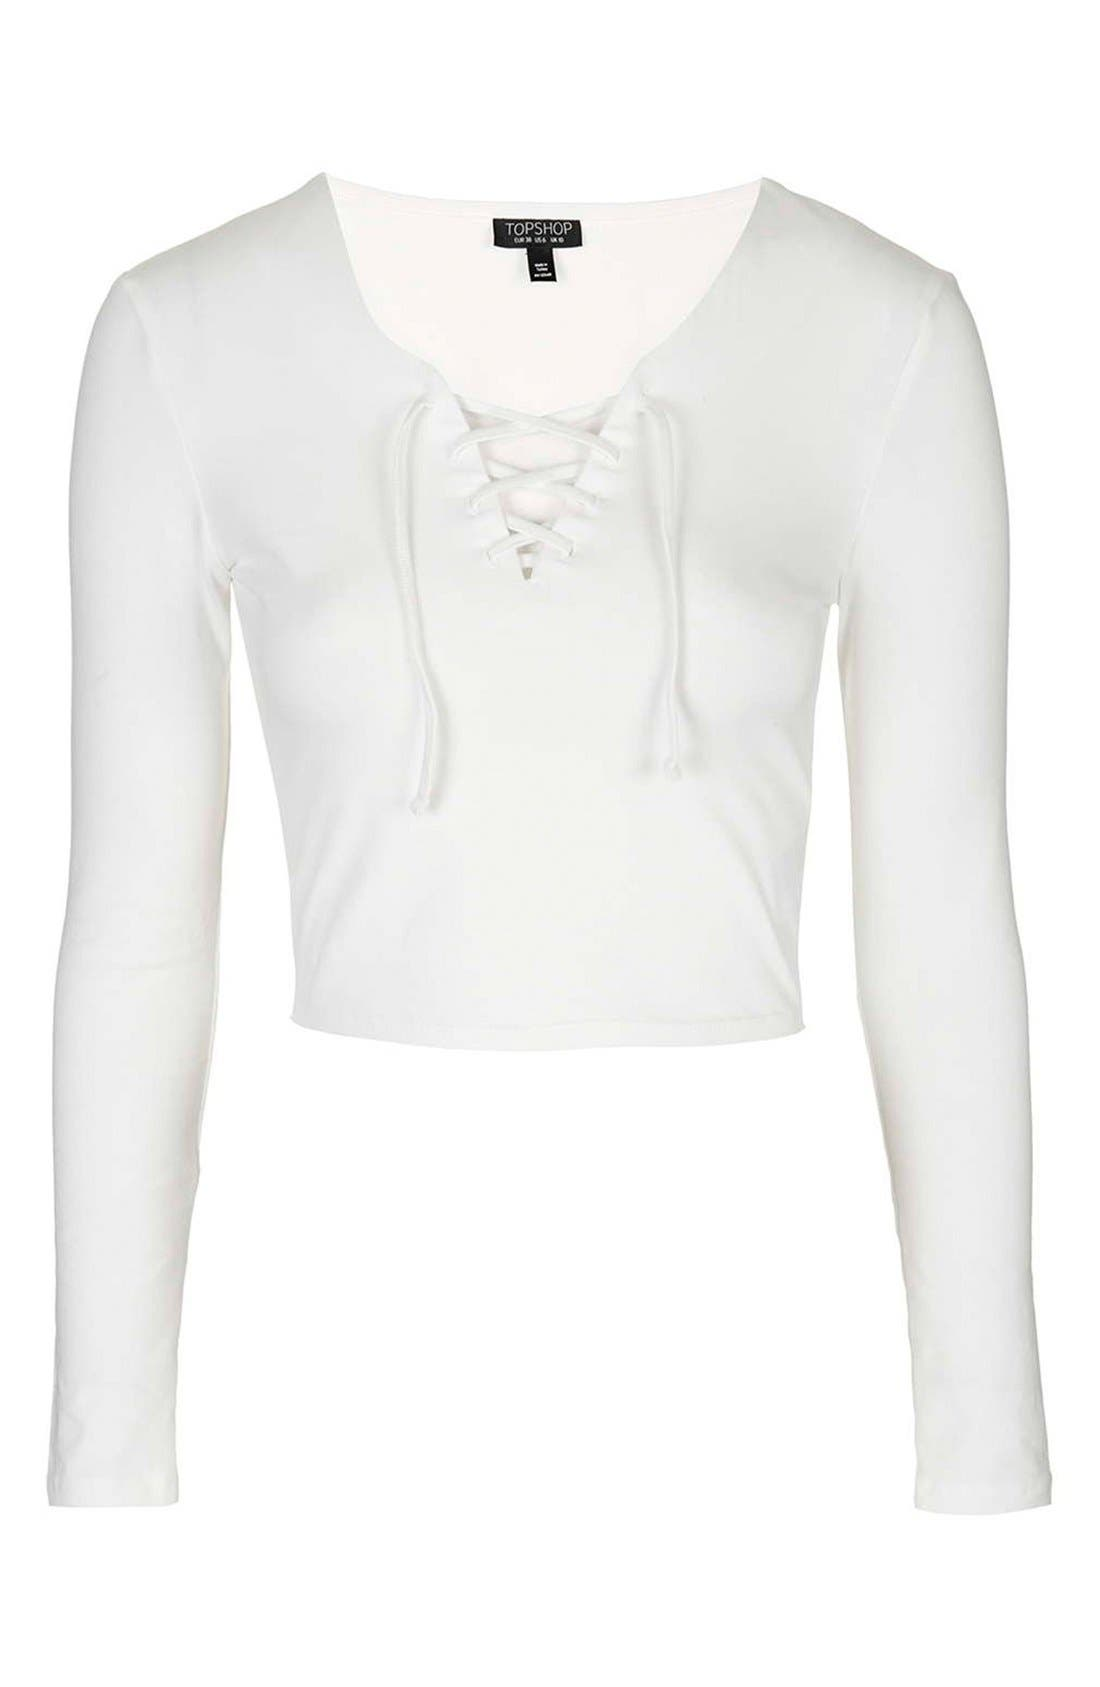 Alternate Image 3  - Topshop Lace-Up Crop Top